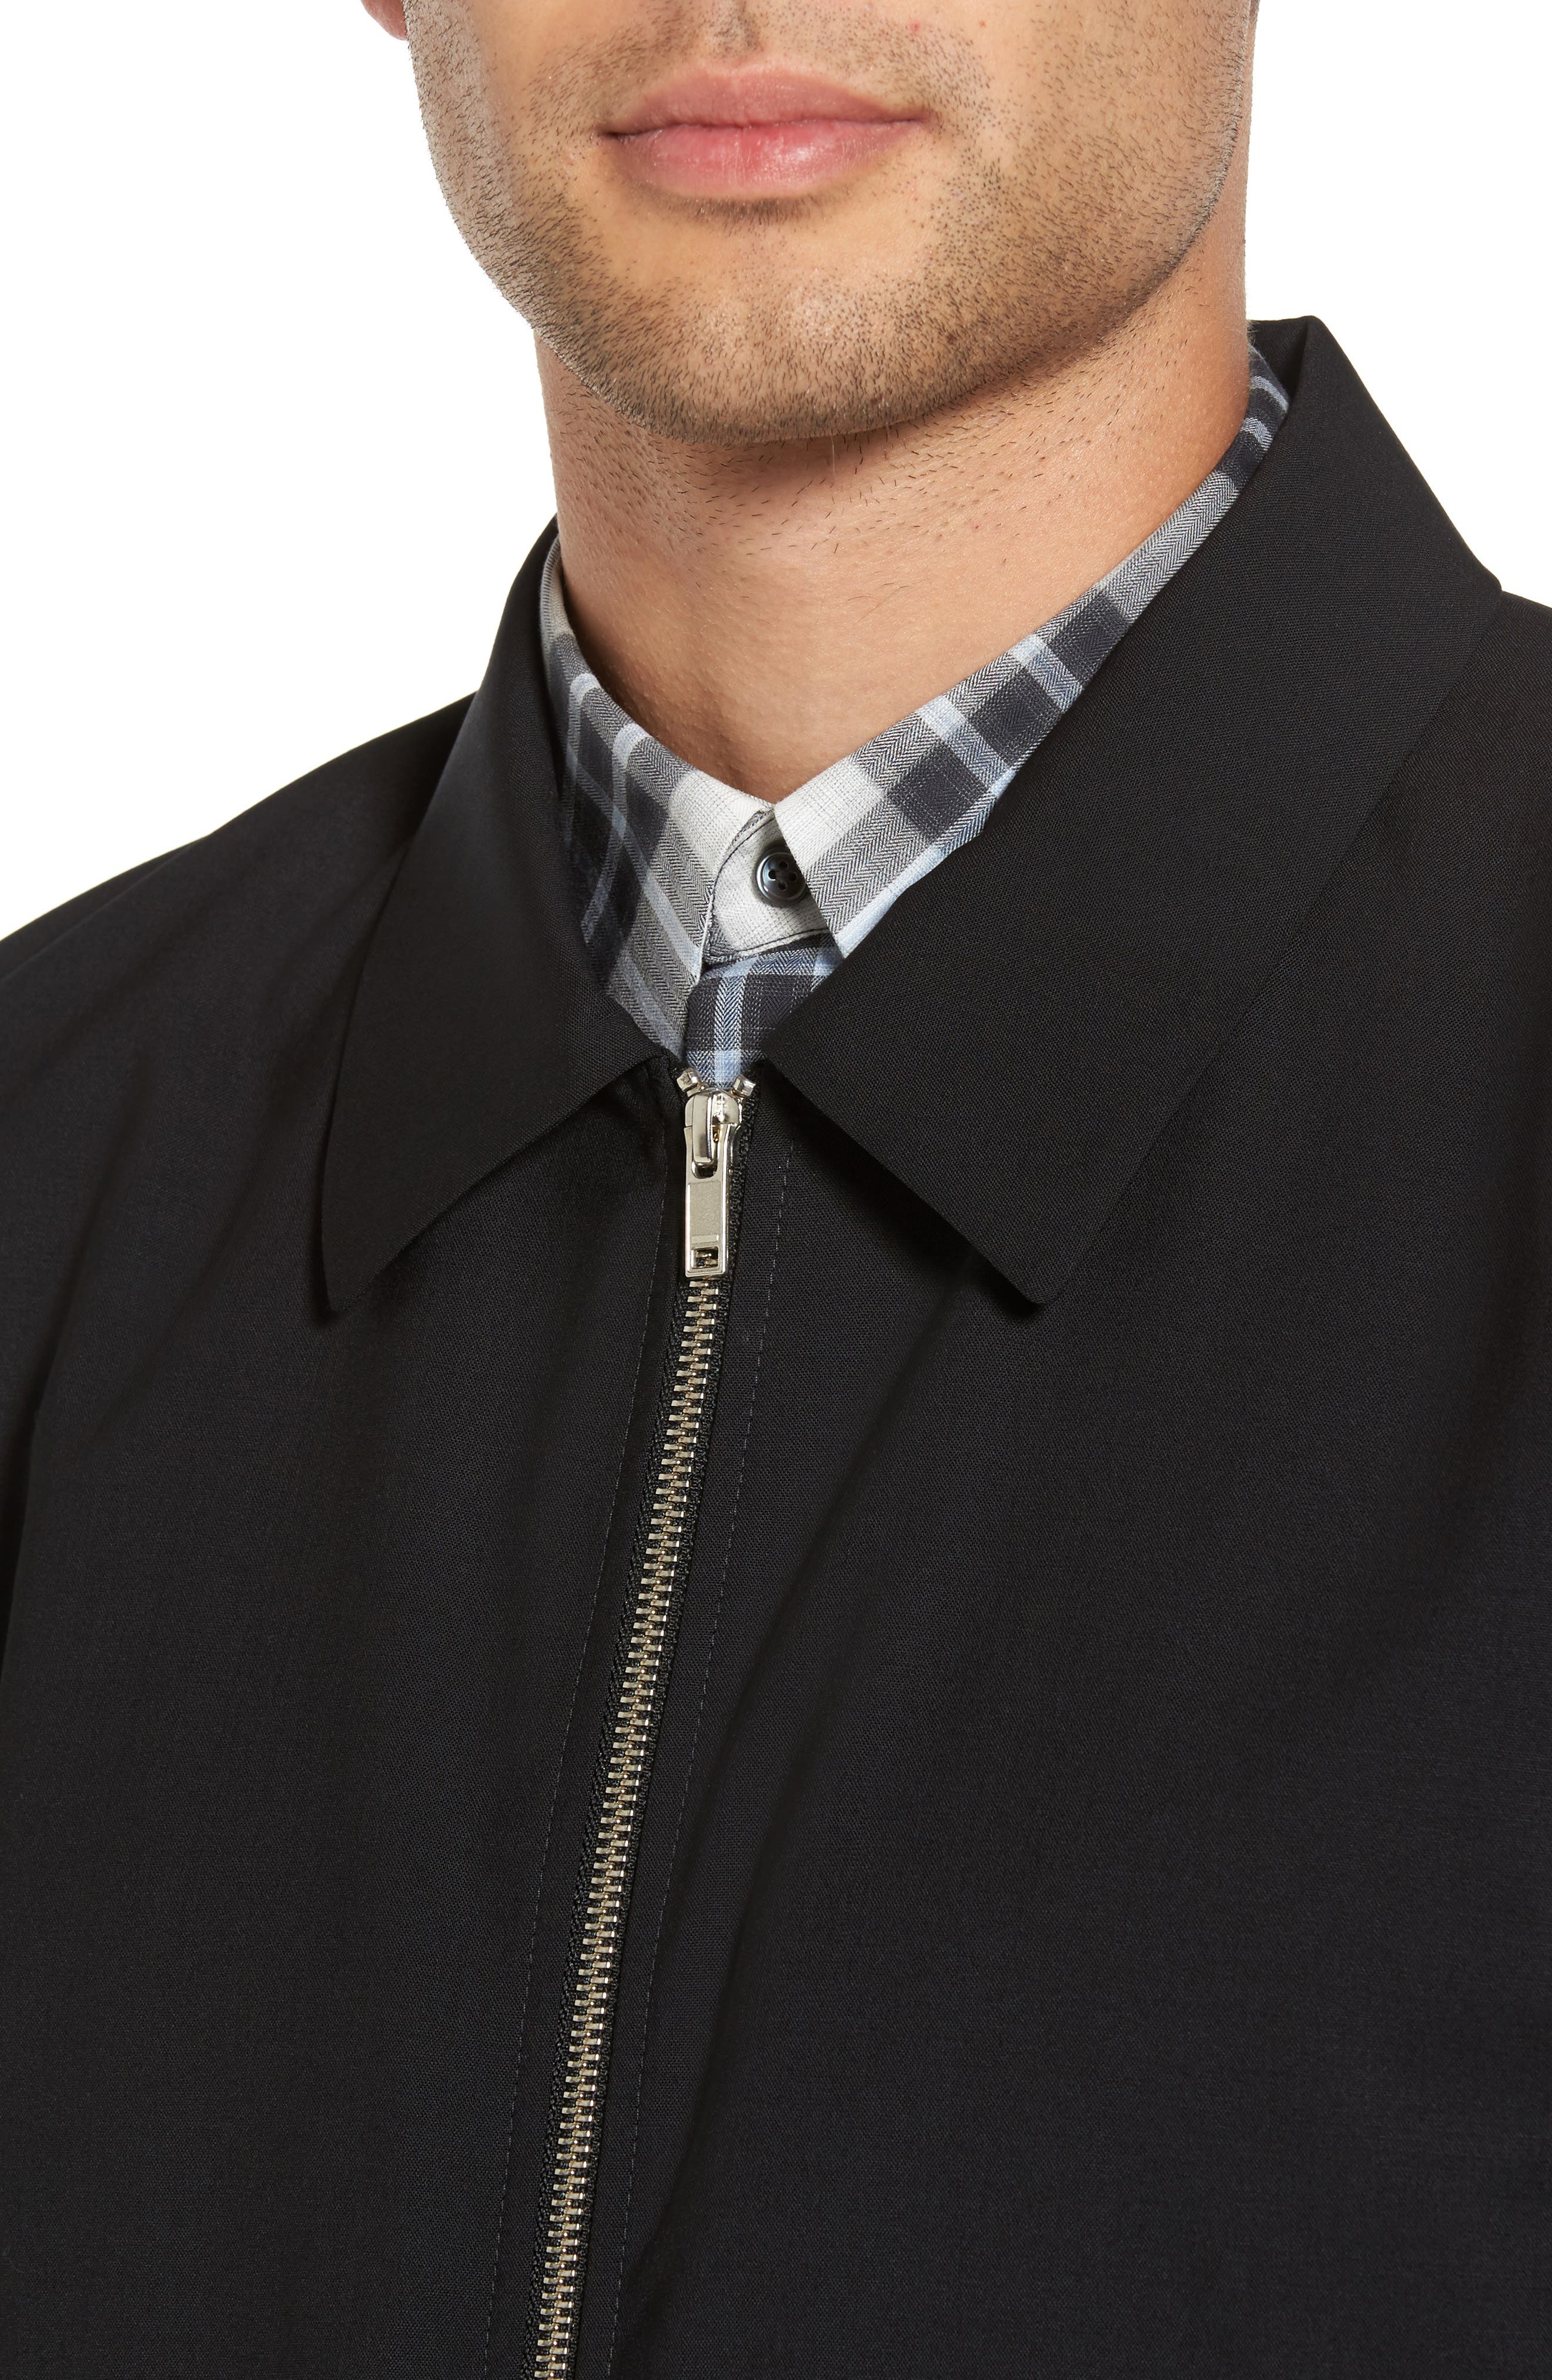 Stretch Wool Zip Front Jacket,                             Alternate thumbnail 4, color,                             001